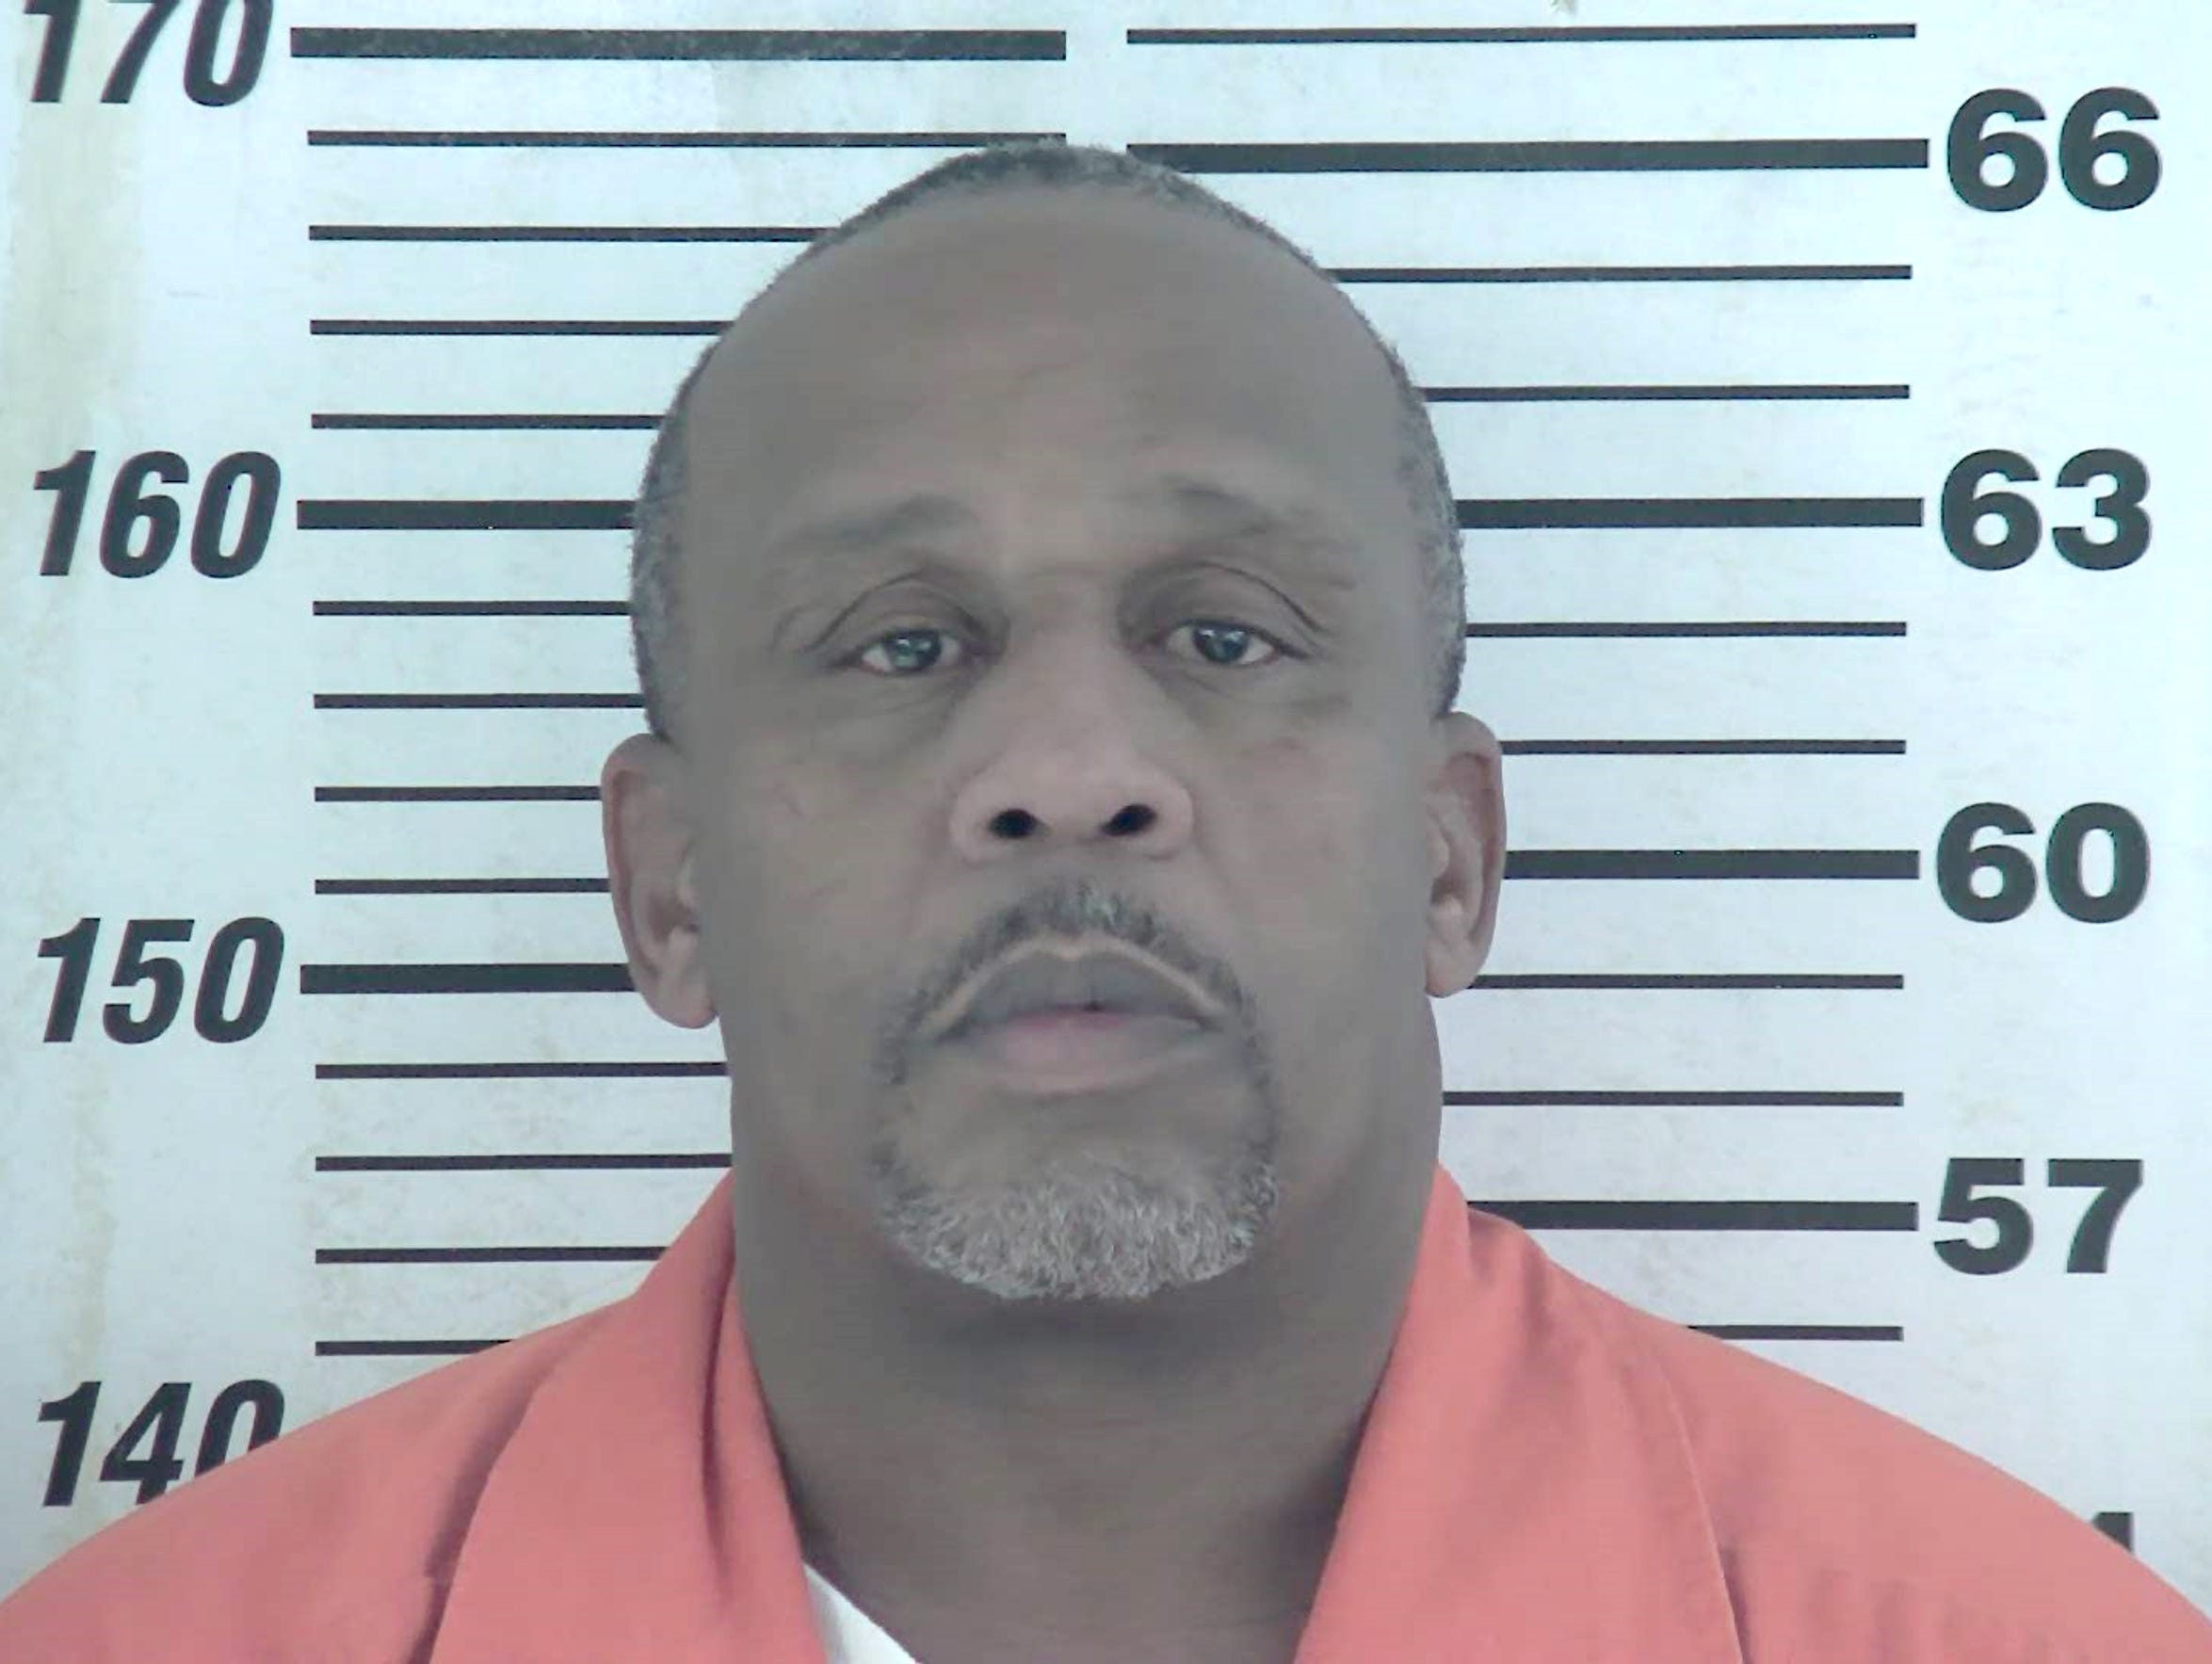 Joe Womack told jurors in 1988 that when he and William Virgil shared an isolation cell in prison, Virgil confessed killing Retha Welch. Provided photo